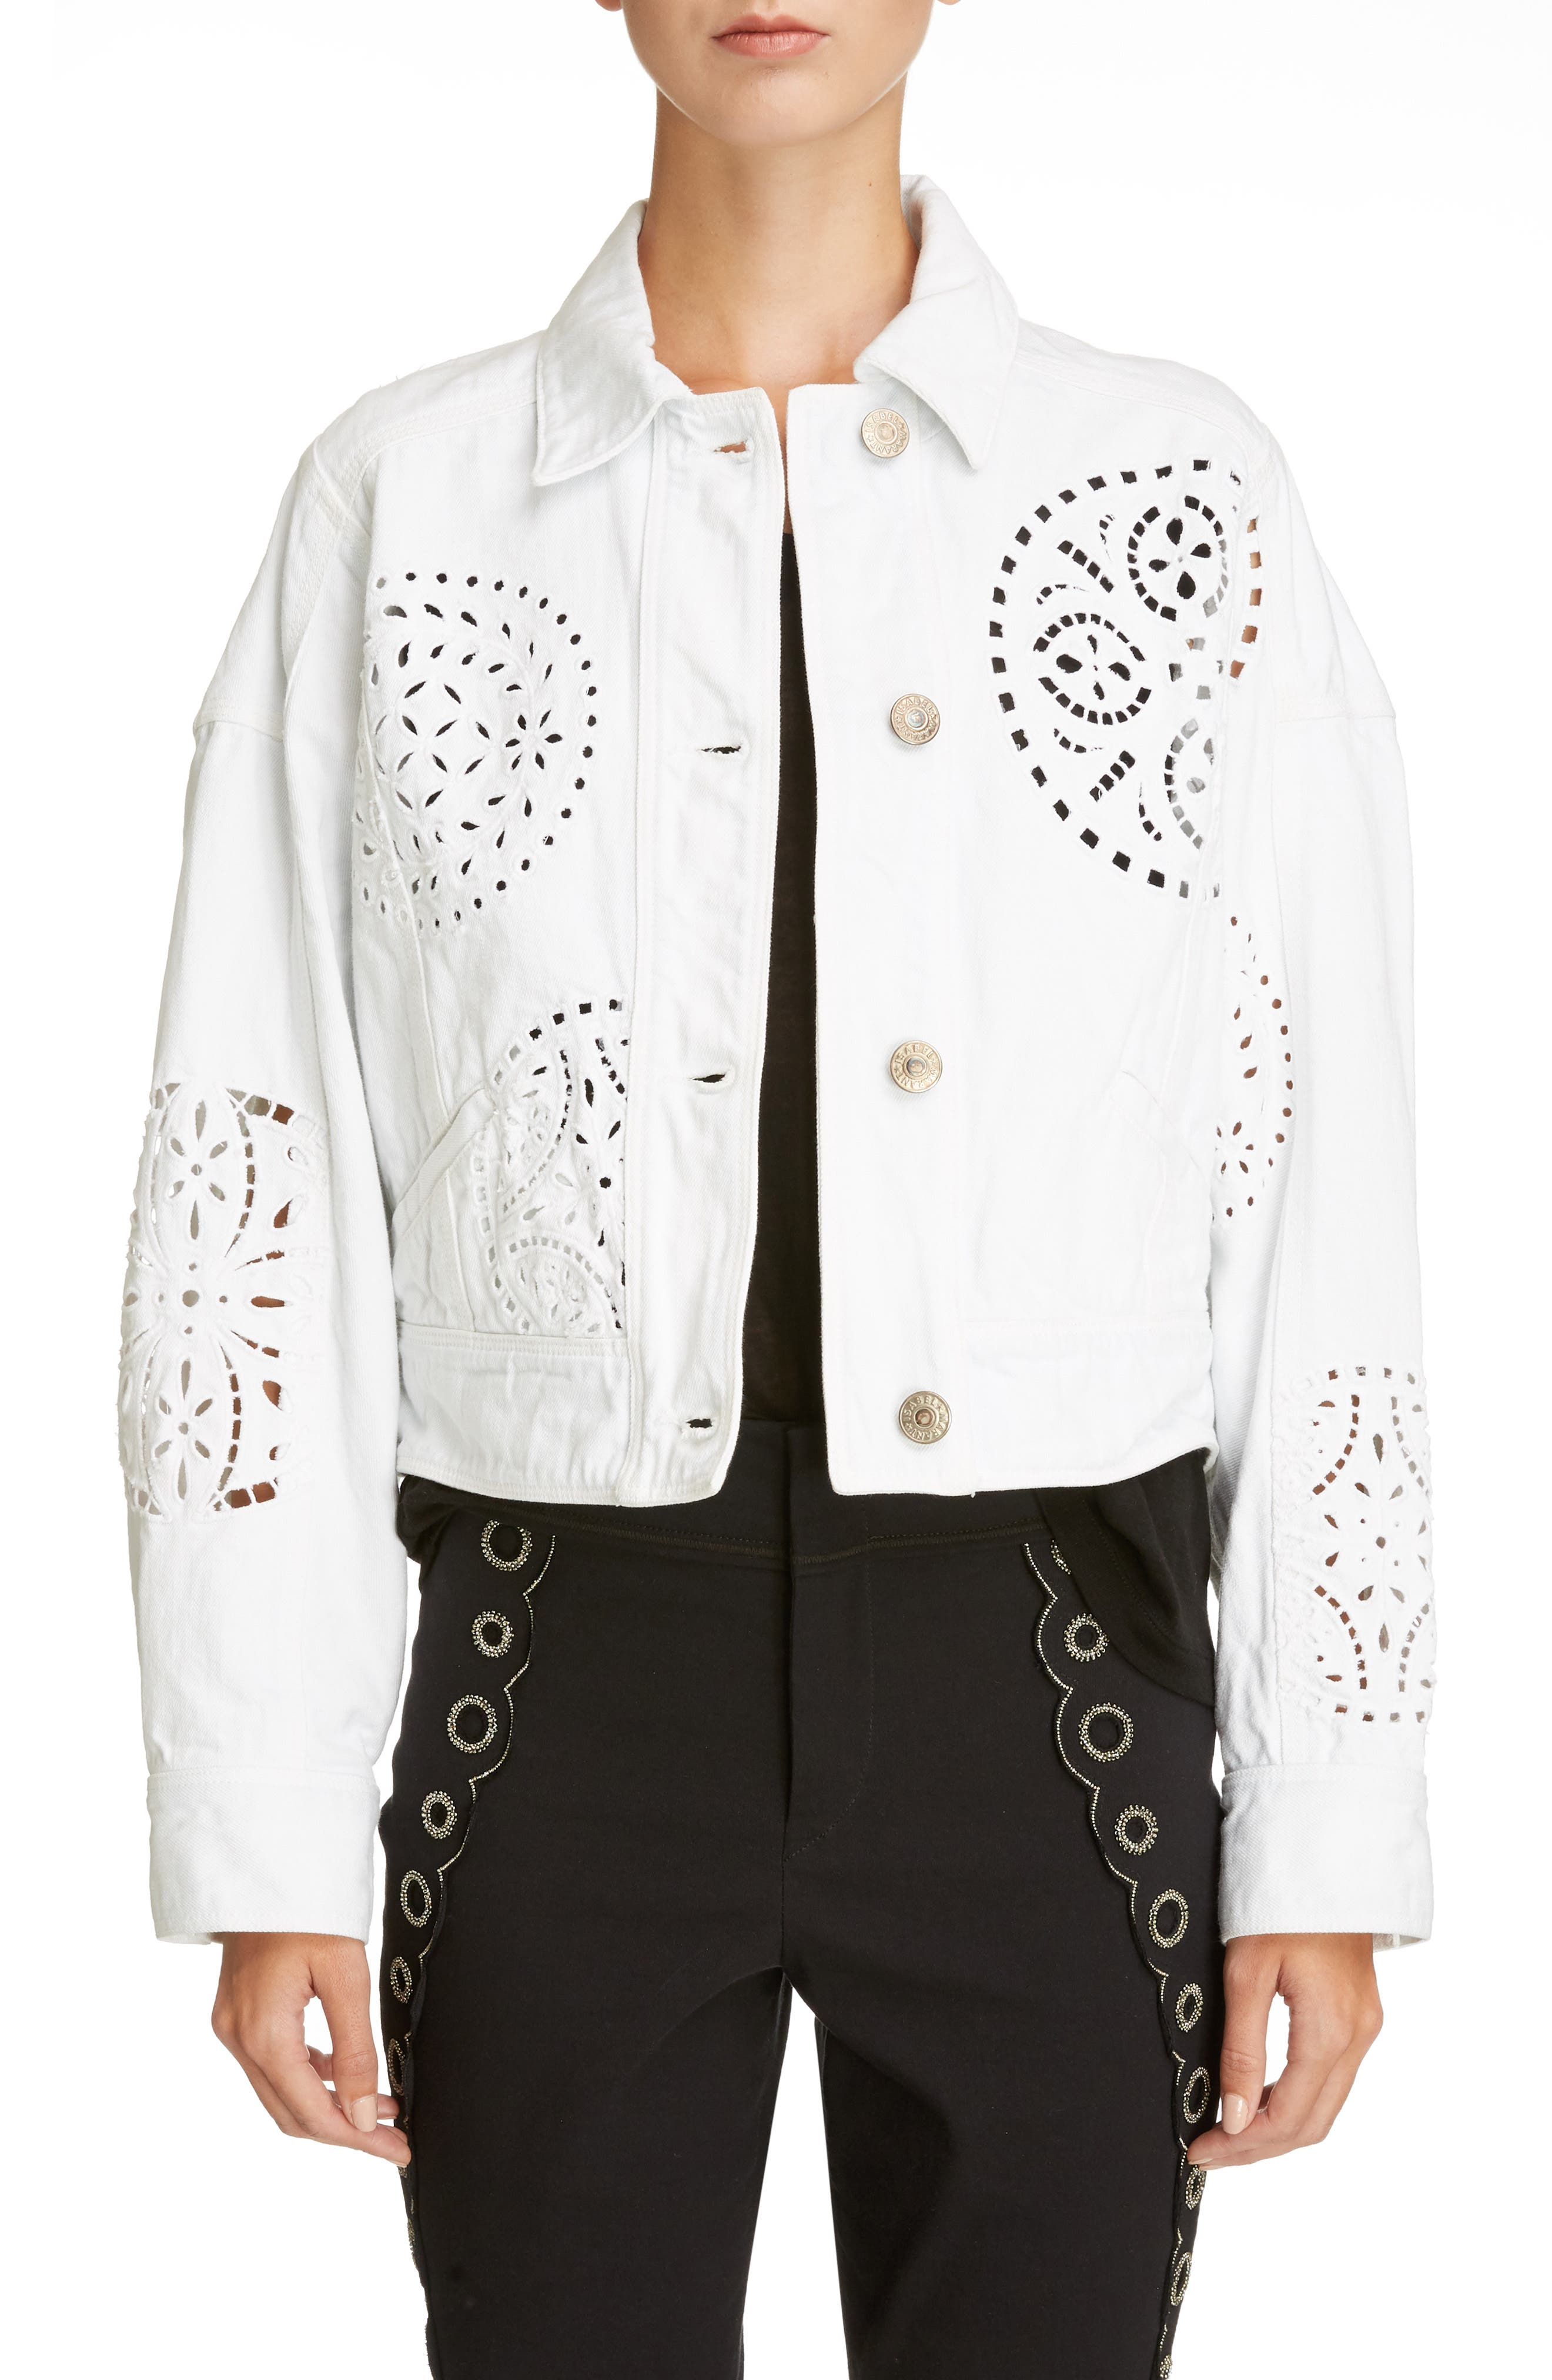 Broderie Anglaise Denim Jacket,                             Main thumbnail 1, color,                             White